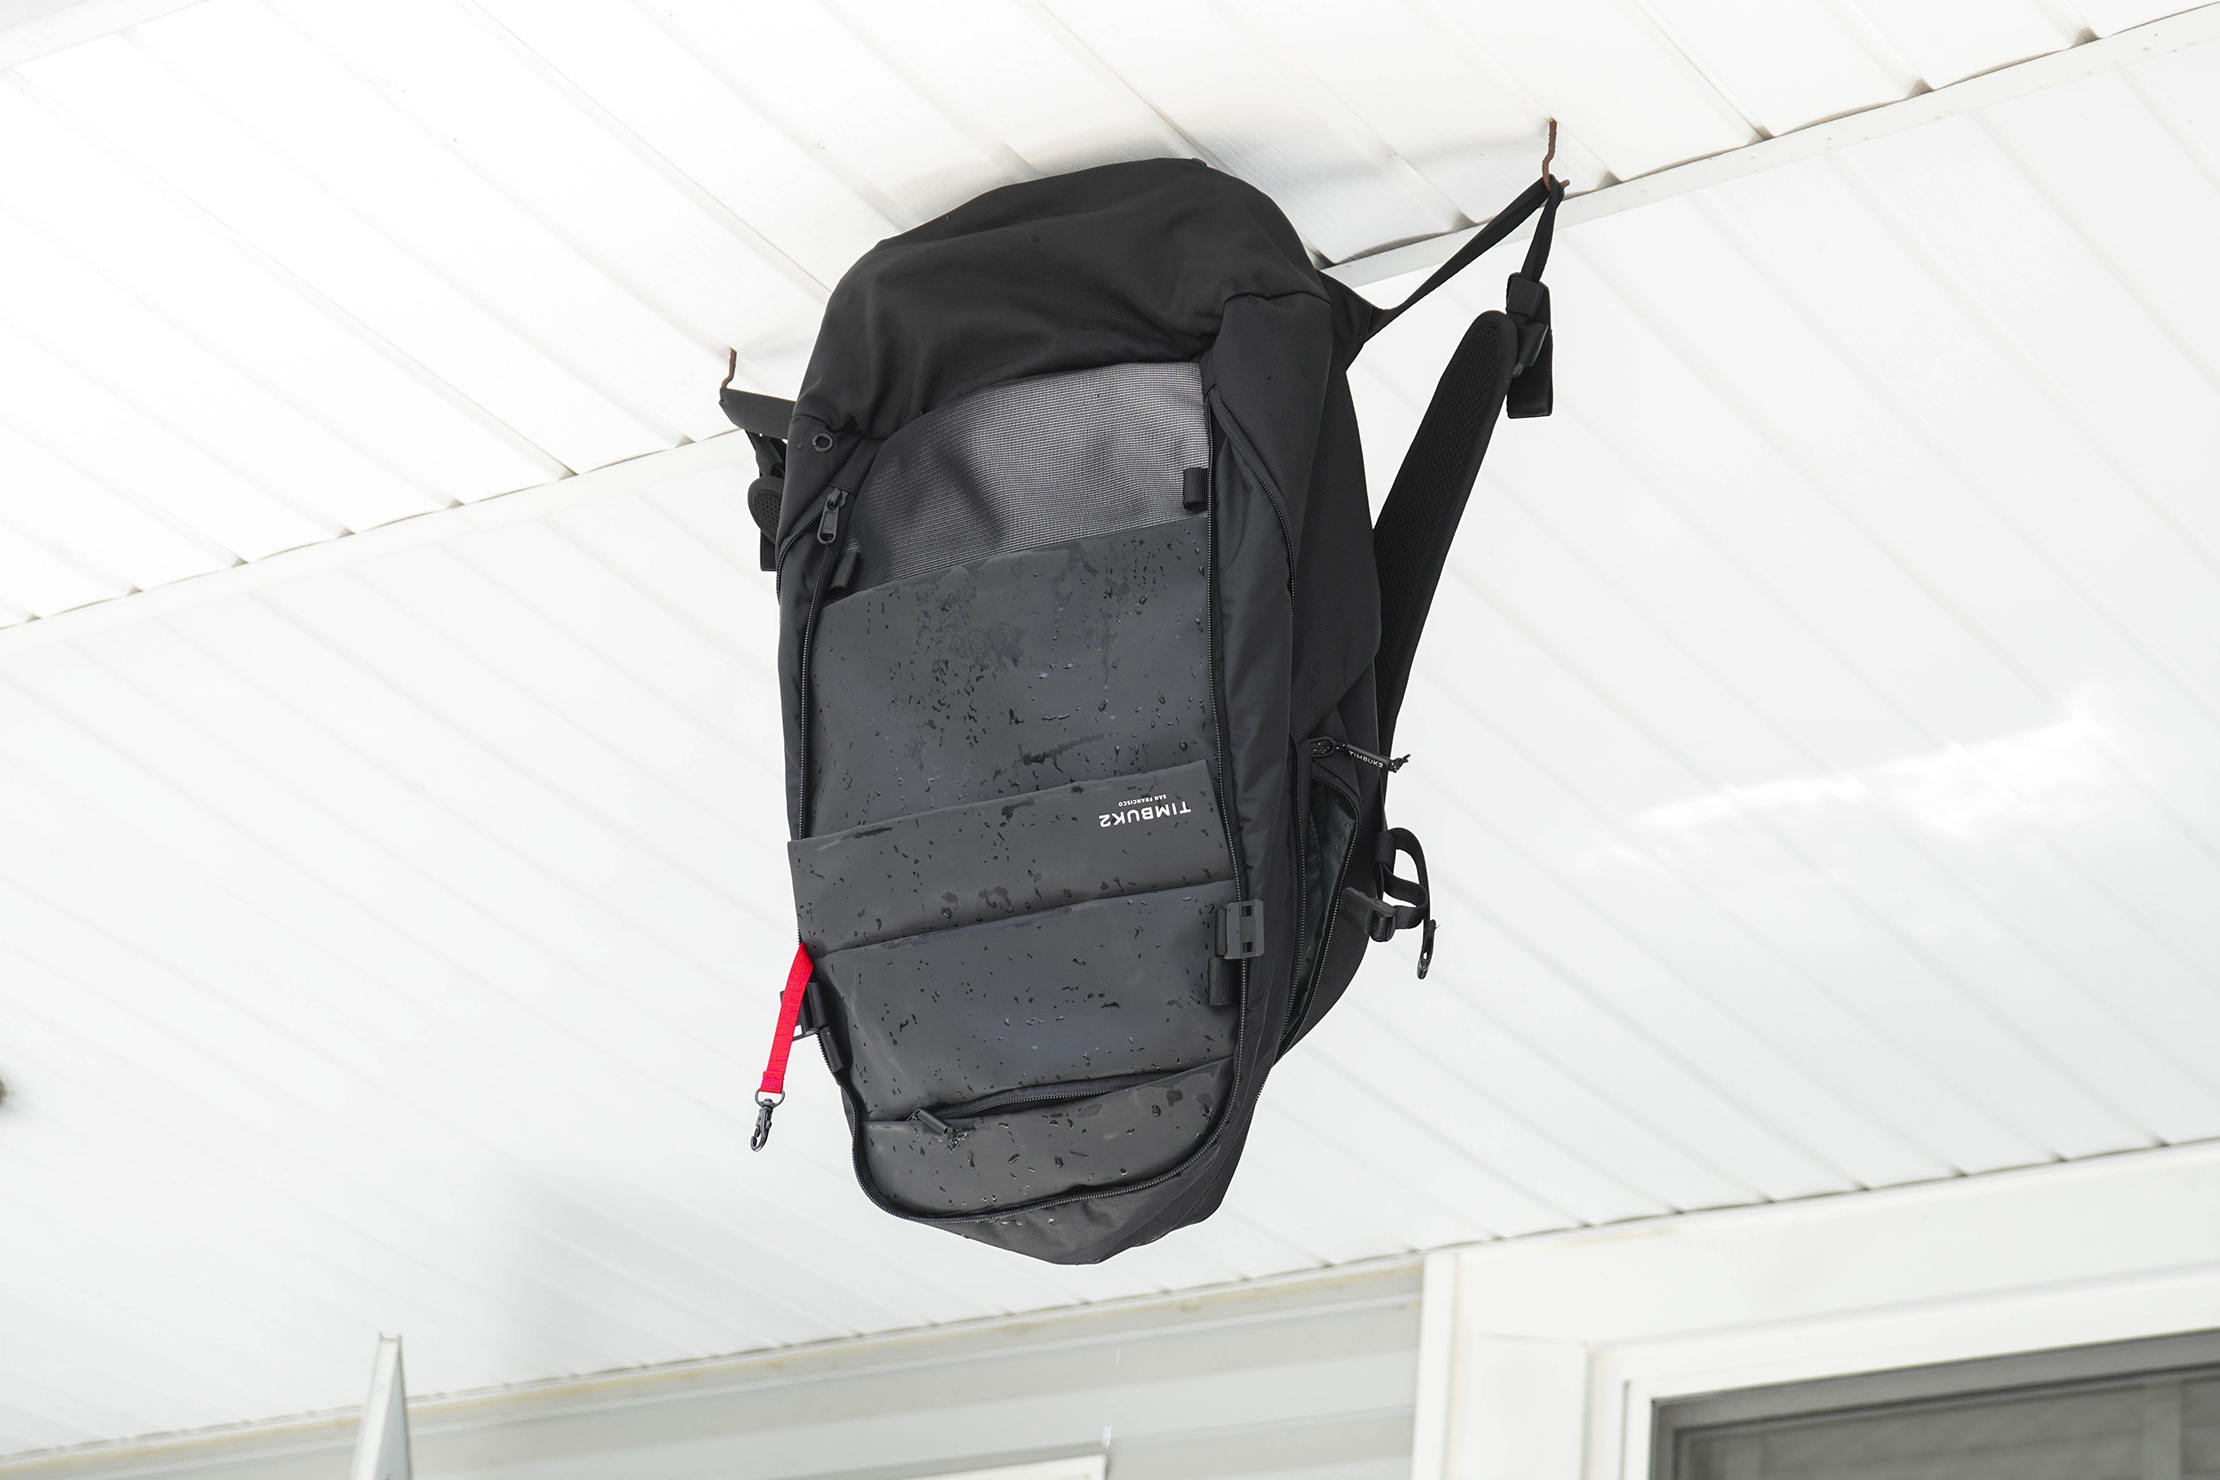 Hanging Backpack to Dry